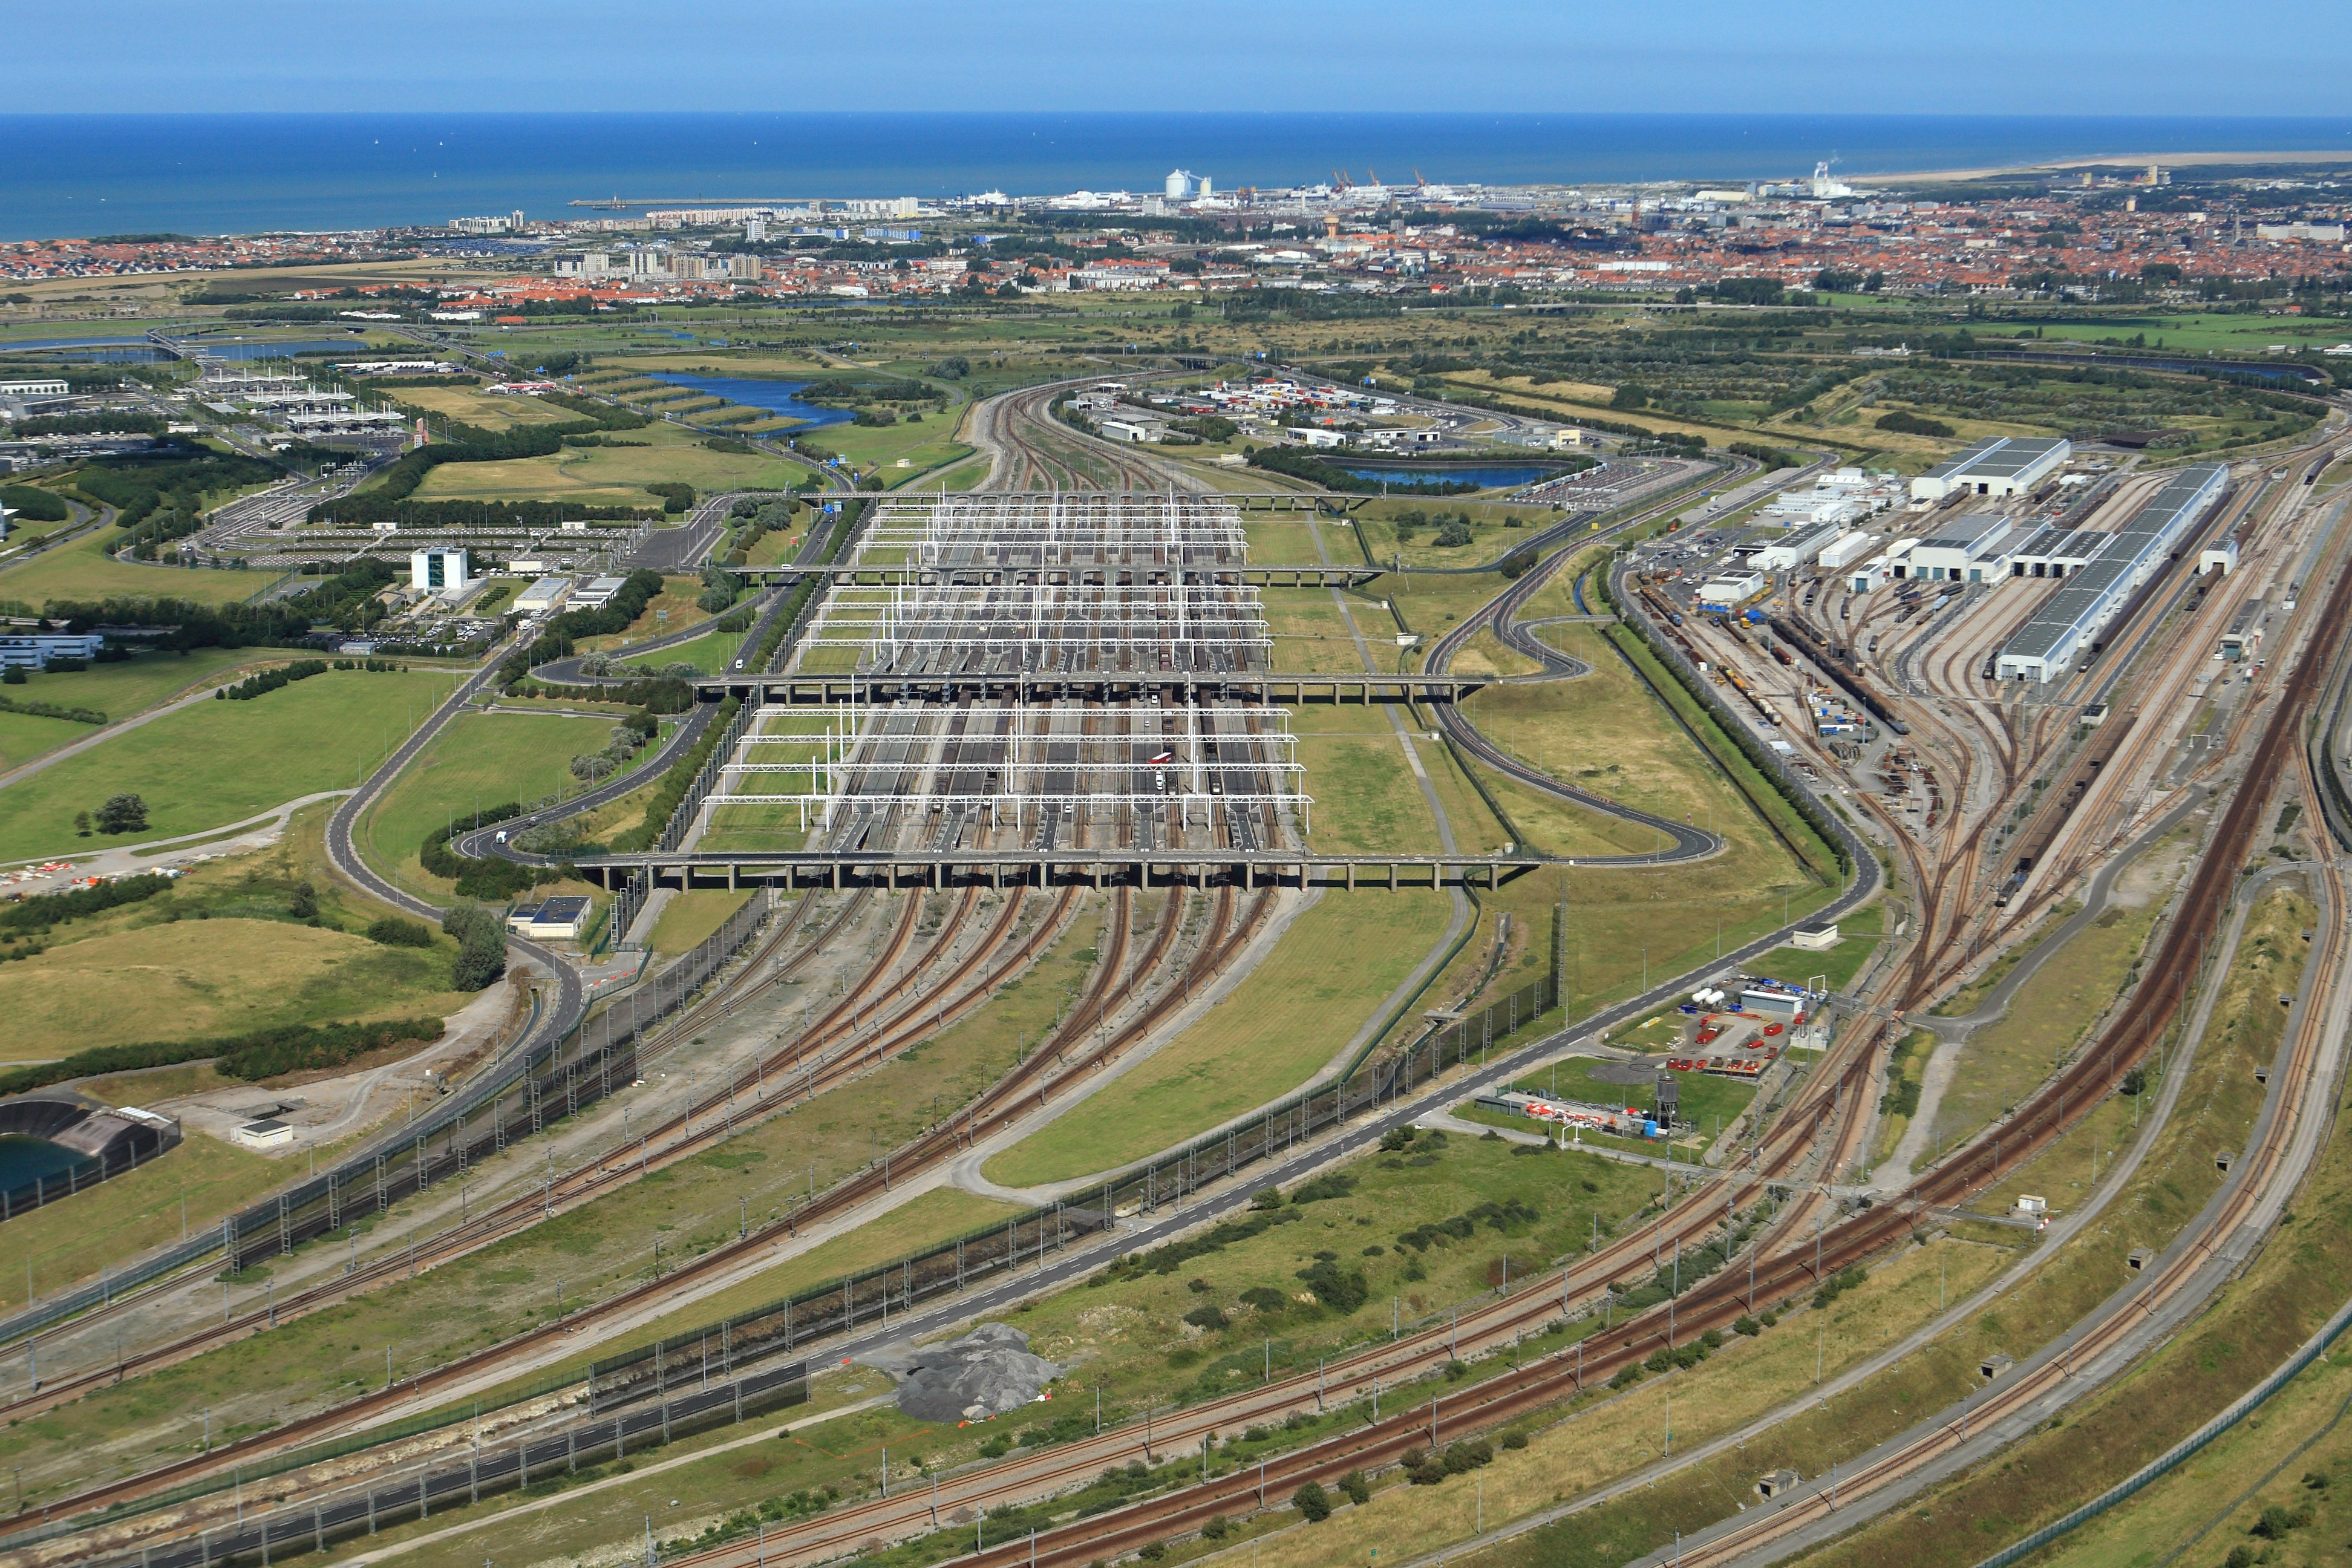 A panoramic view of Eurotunnel Le Shuttle train tracks stretching over green and brown fields dotted with buildings running under a blue bridge with blue water in the distance